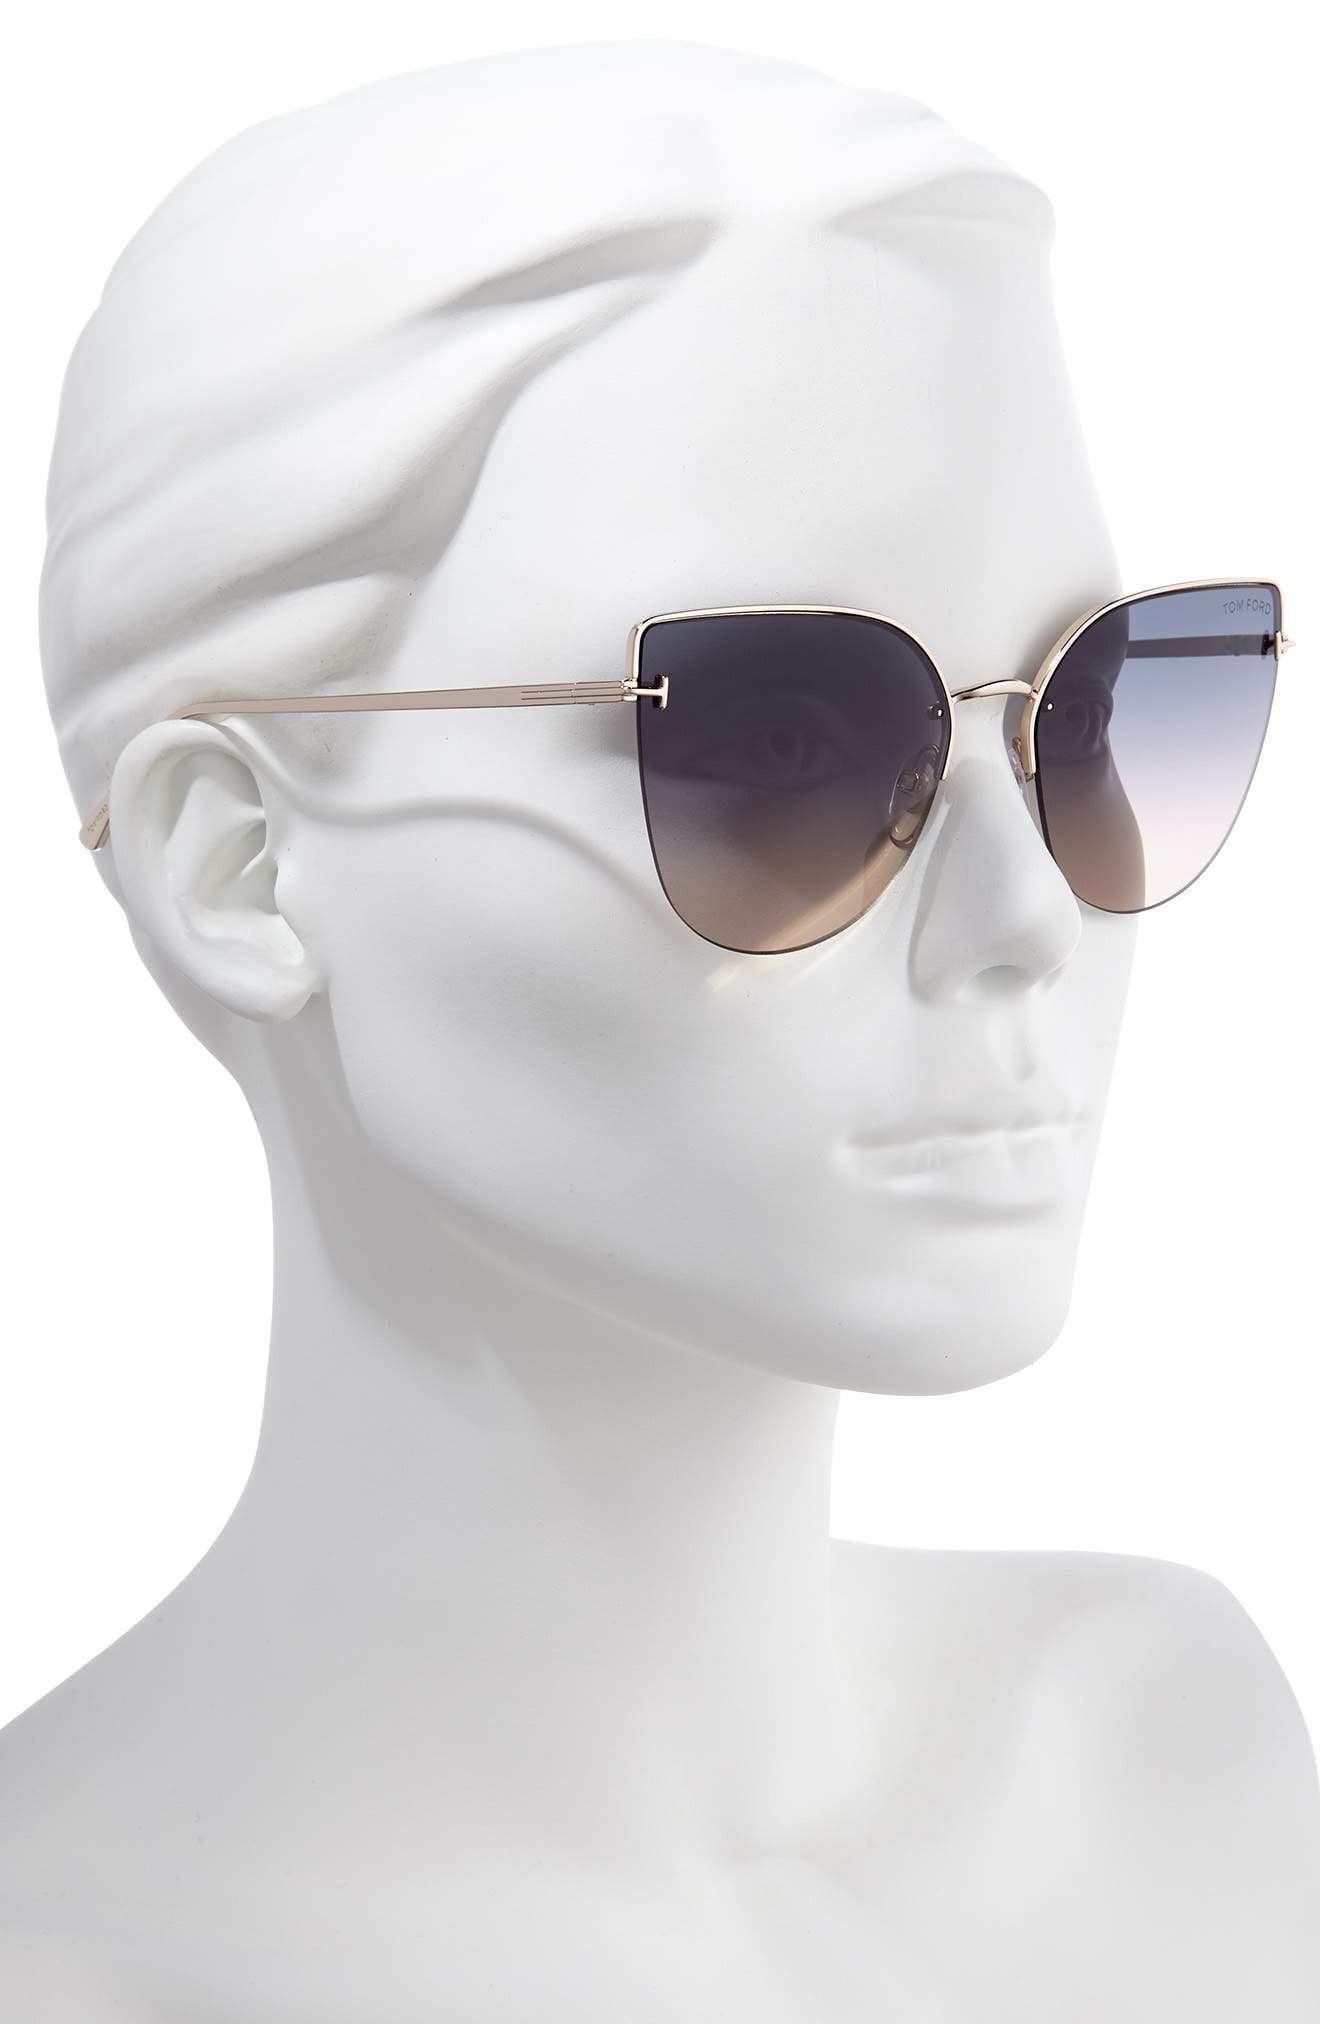 TOM FORD, Ingrid 60mm Cat Eye Sunglasses, Alternate thumbnail 2, color, ROSE GOLD/ GREY TO OCHRE